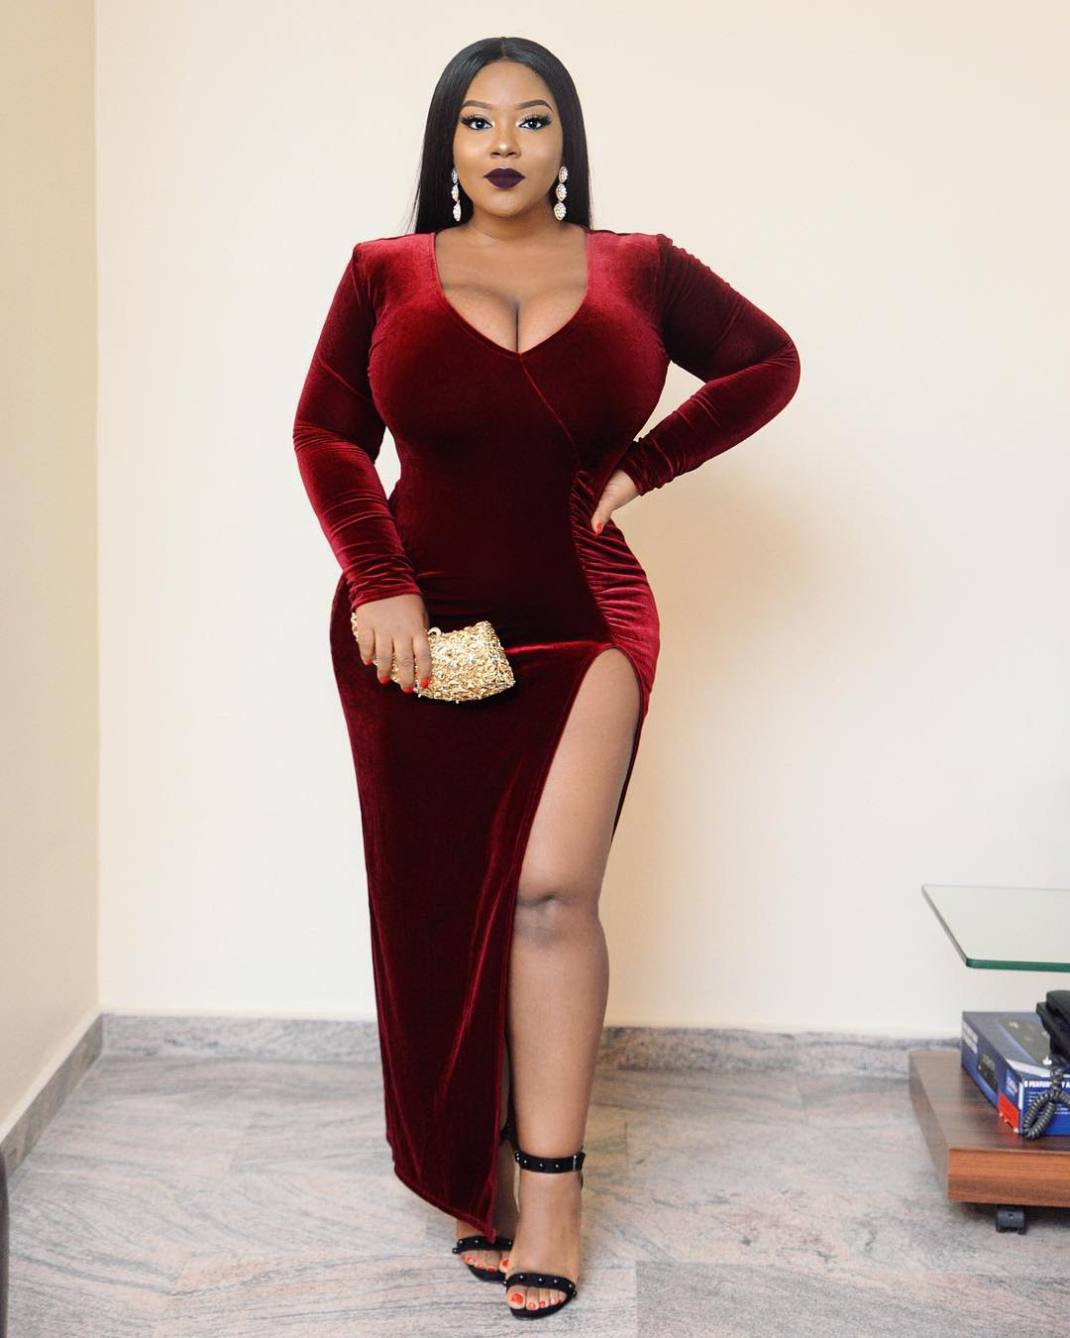 This Curvy Influencer Will Show You How To Look Stylish If You Are Plus Size